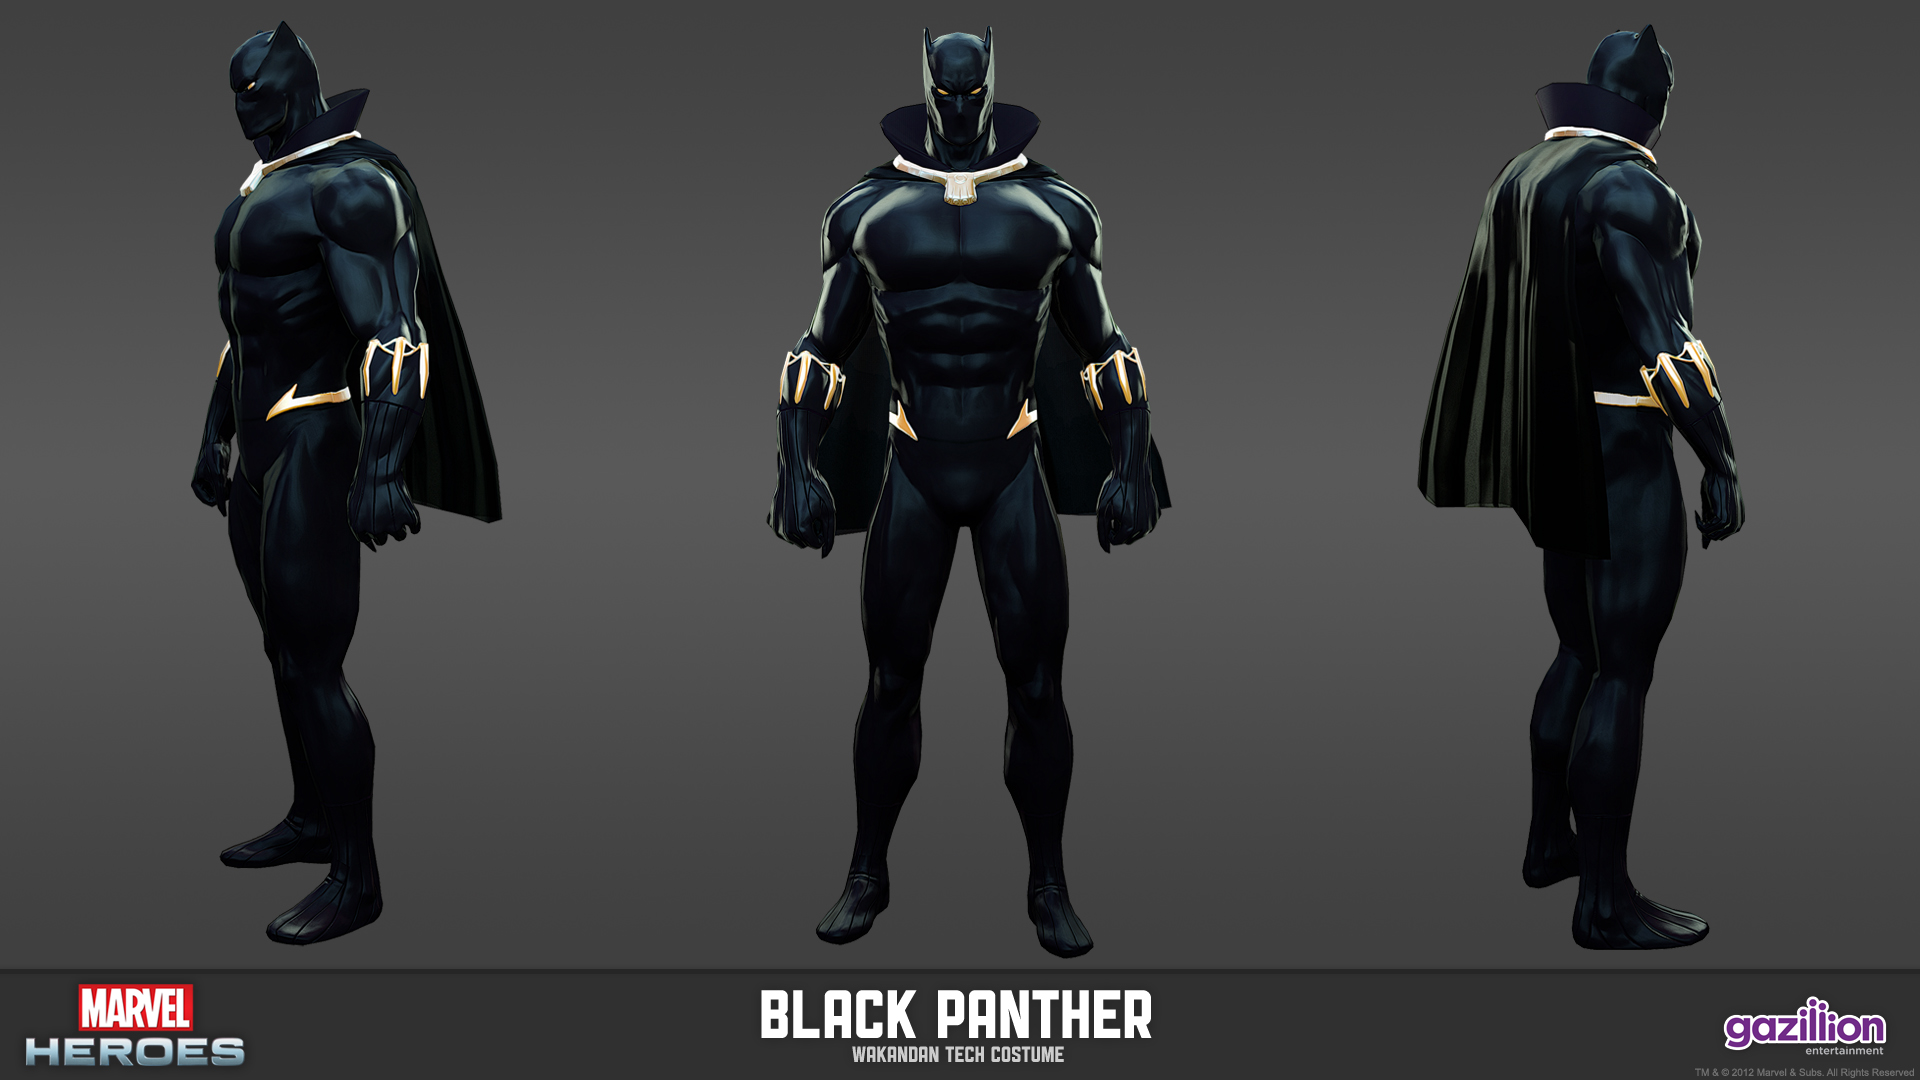 Black Panther Marvel Costume Tyler fermelis 3d character 1920x1080